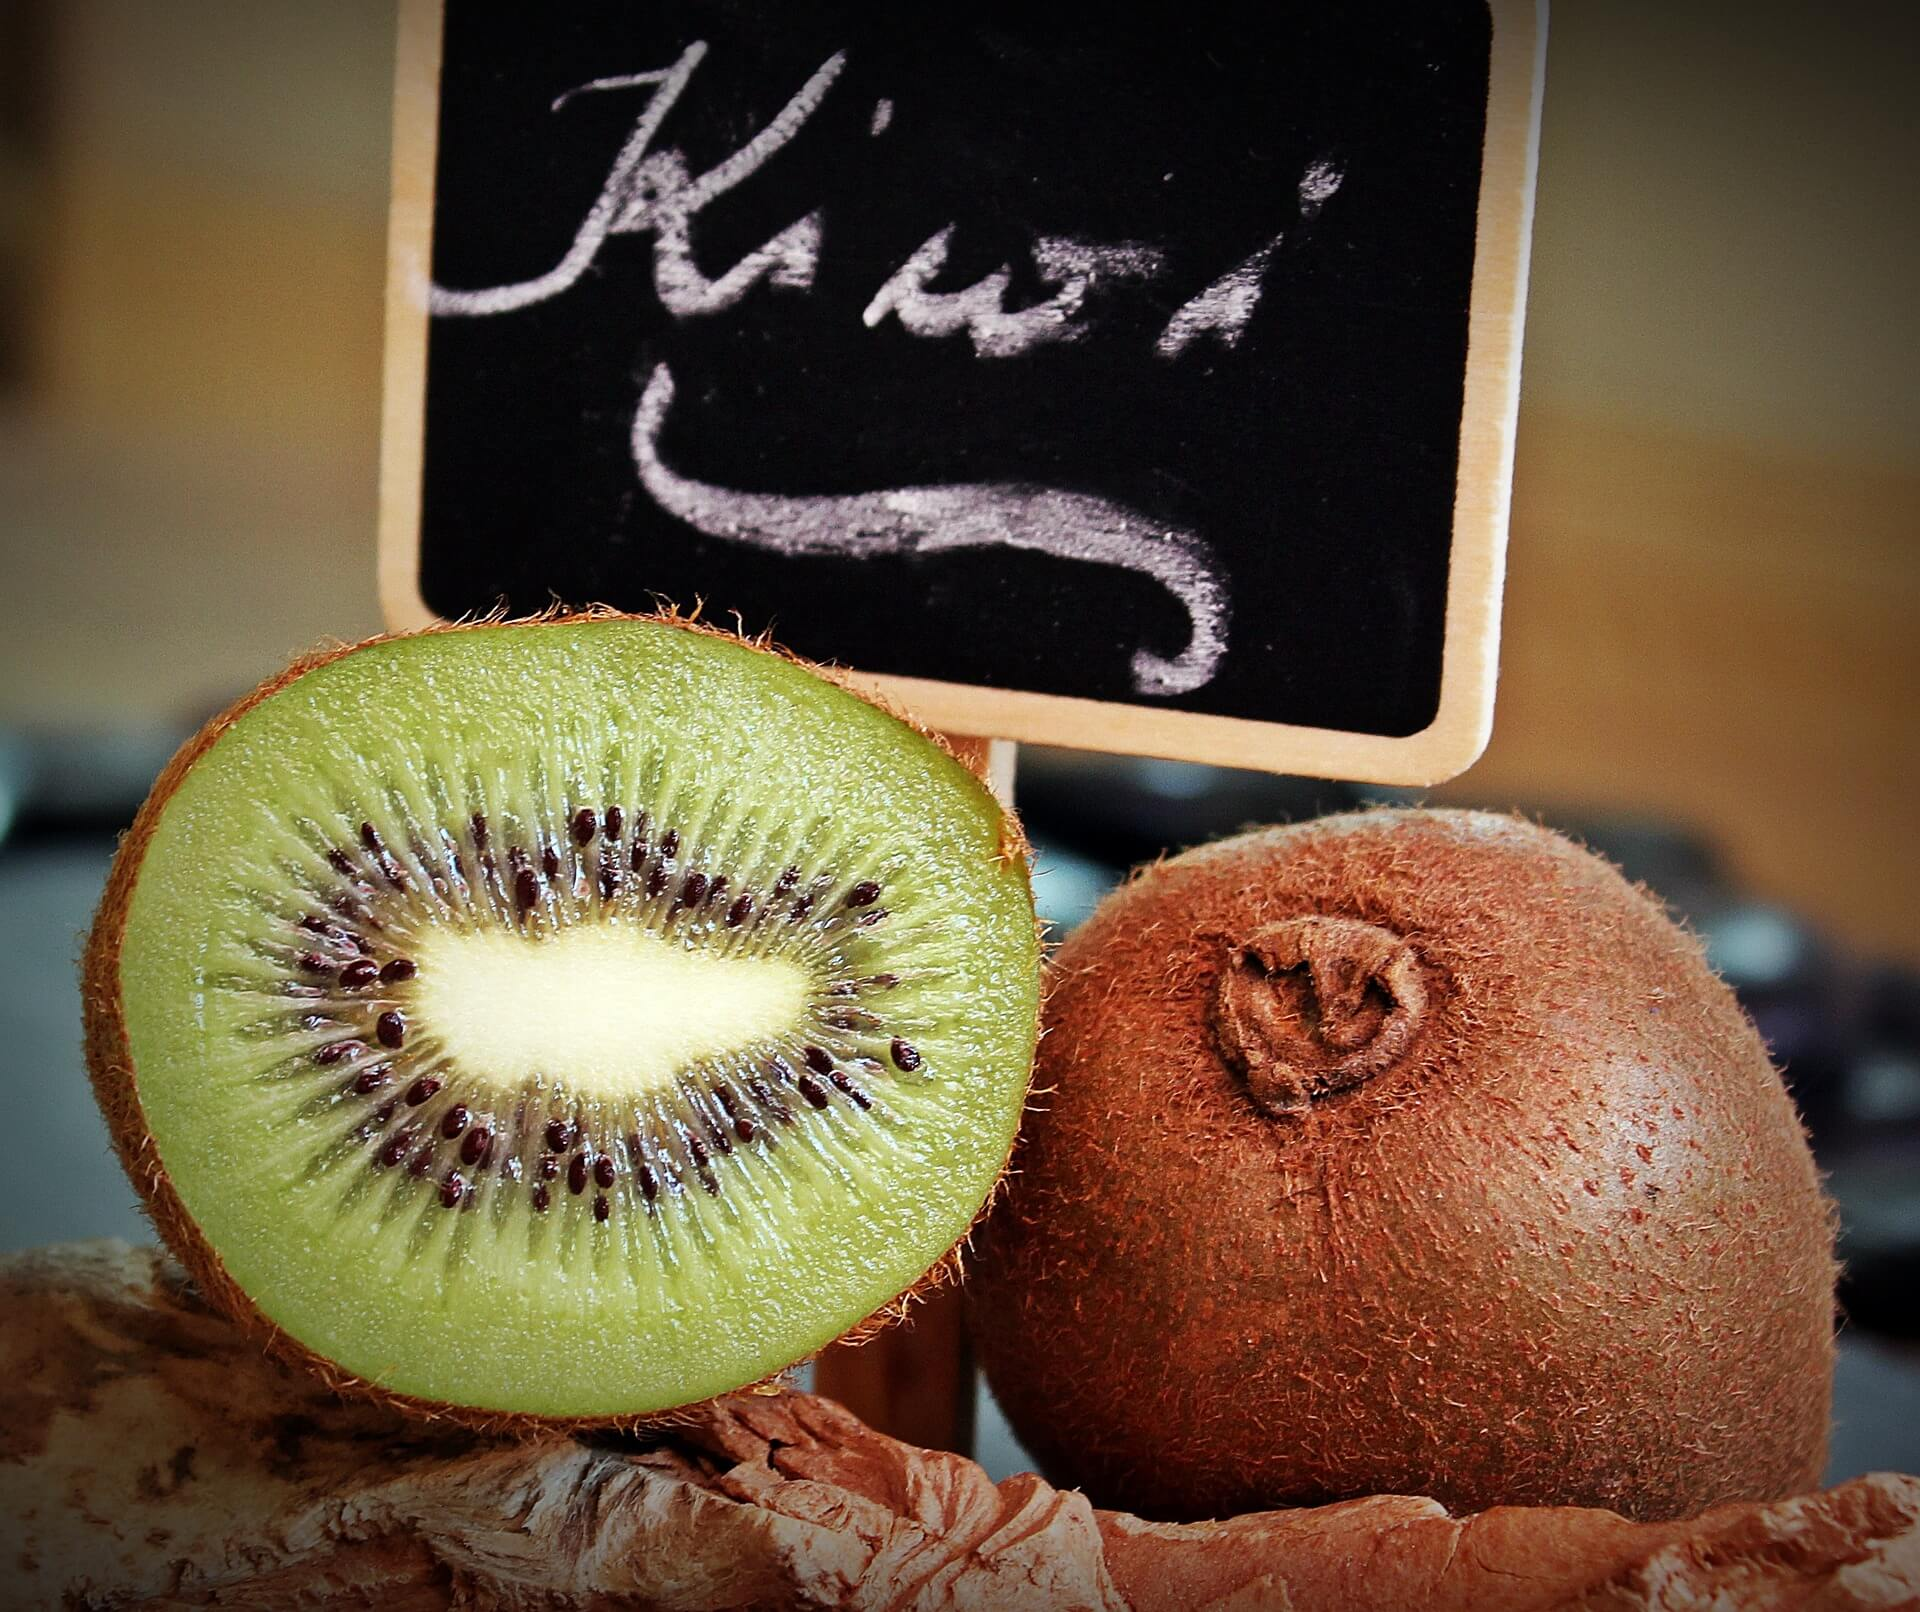 Kiwi to help combat constipation